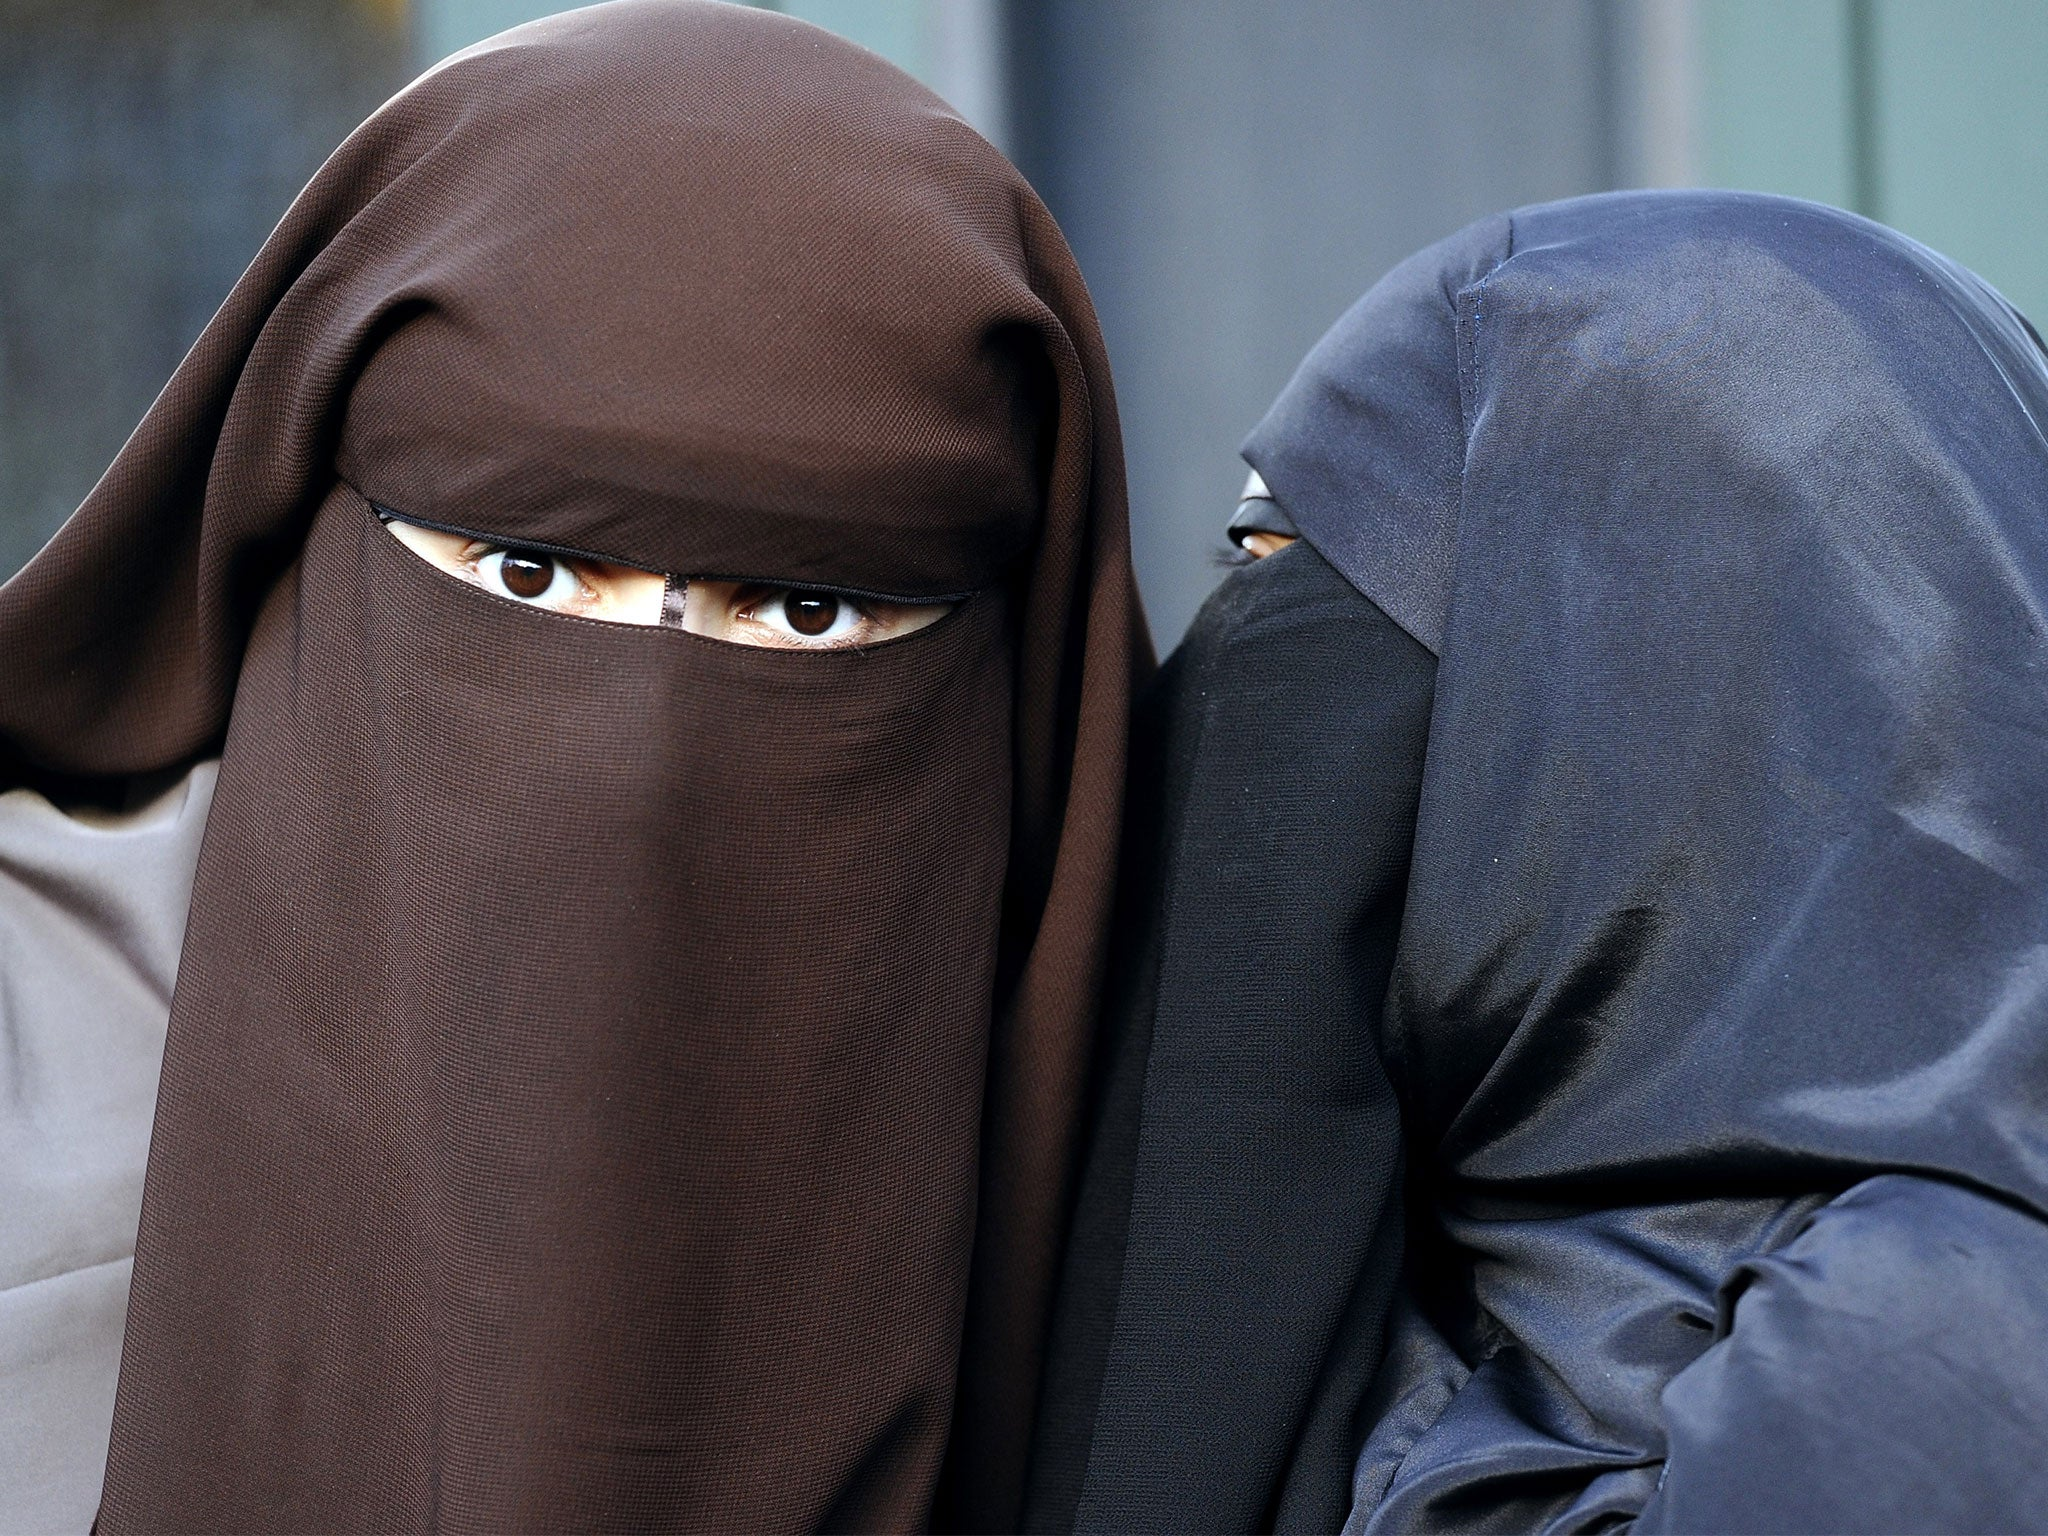 France's niqab ban violates human rights by leaving Muslim women 'confined at home', UN panel rules